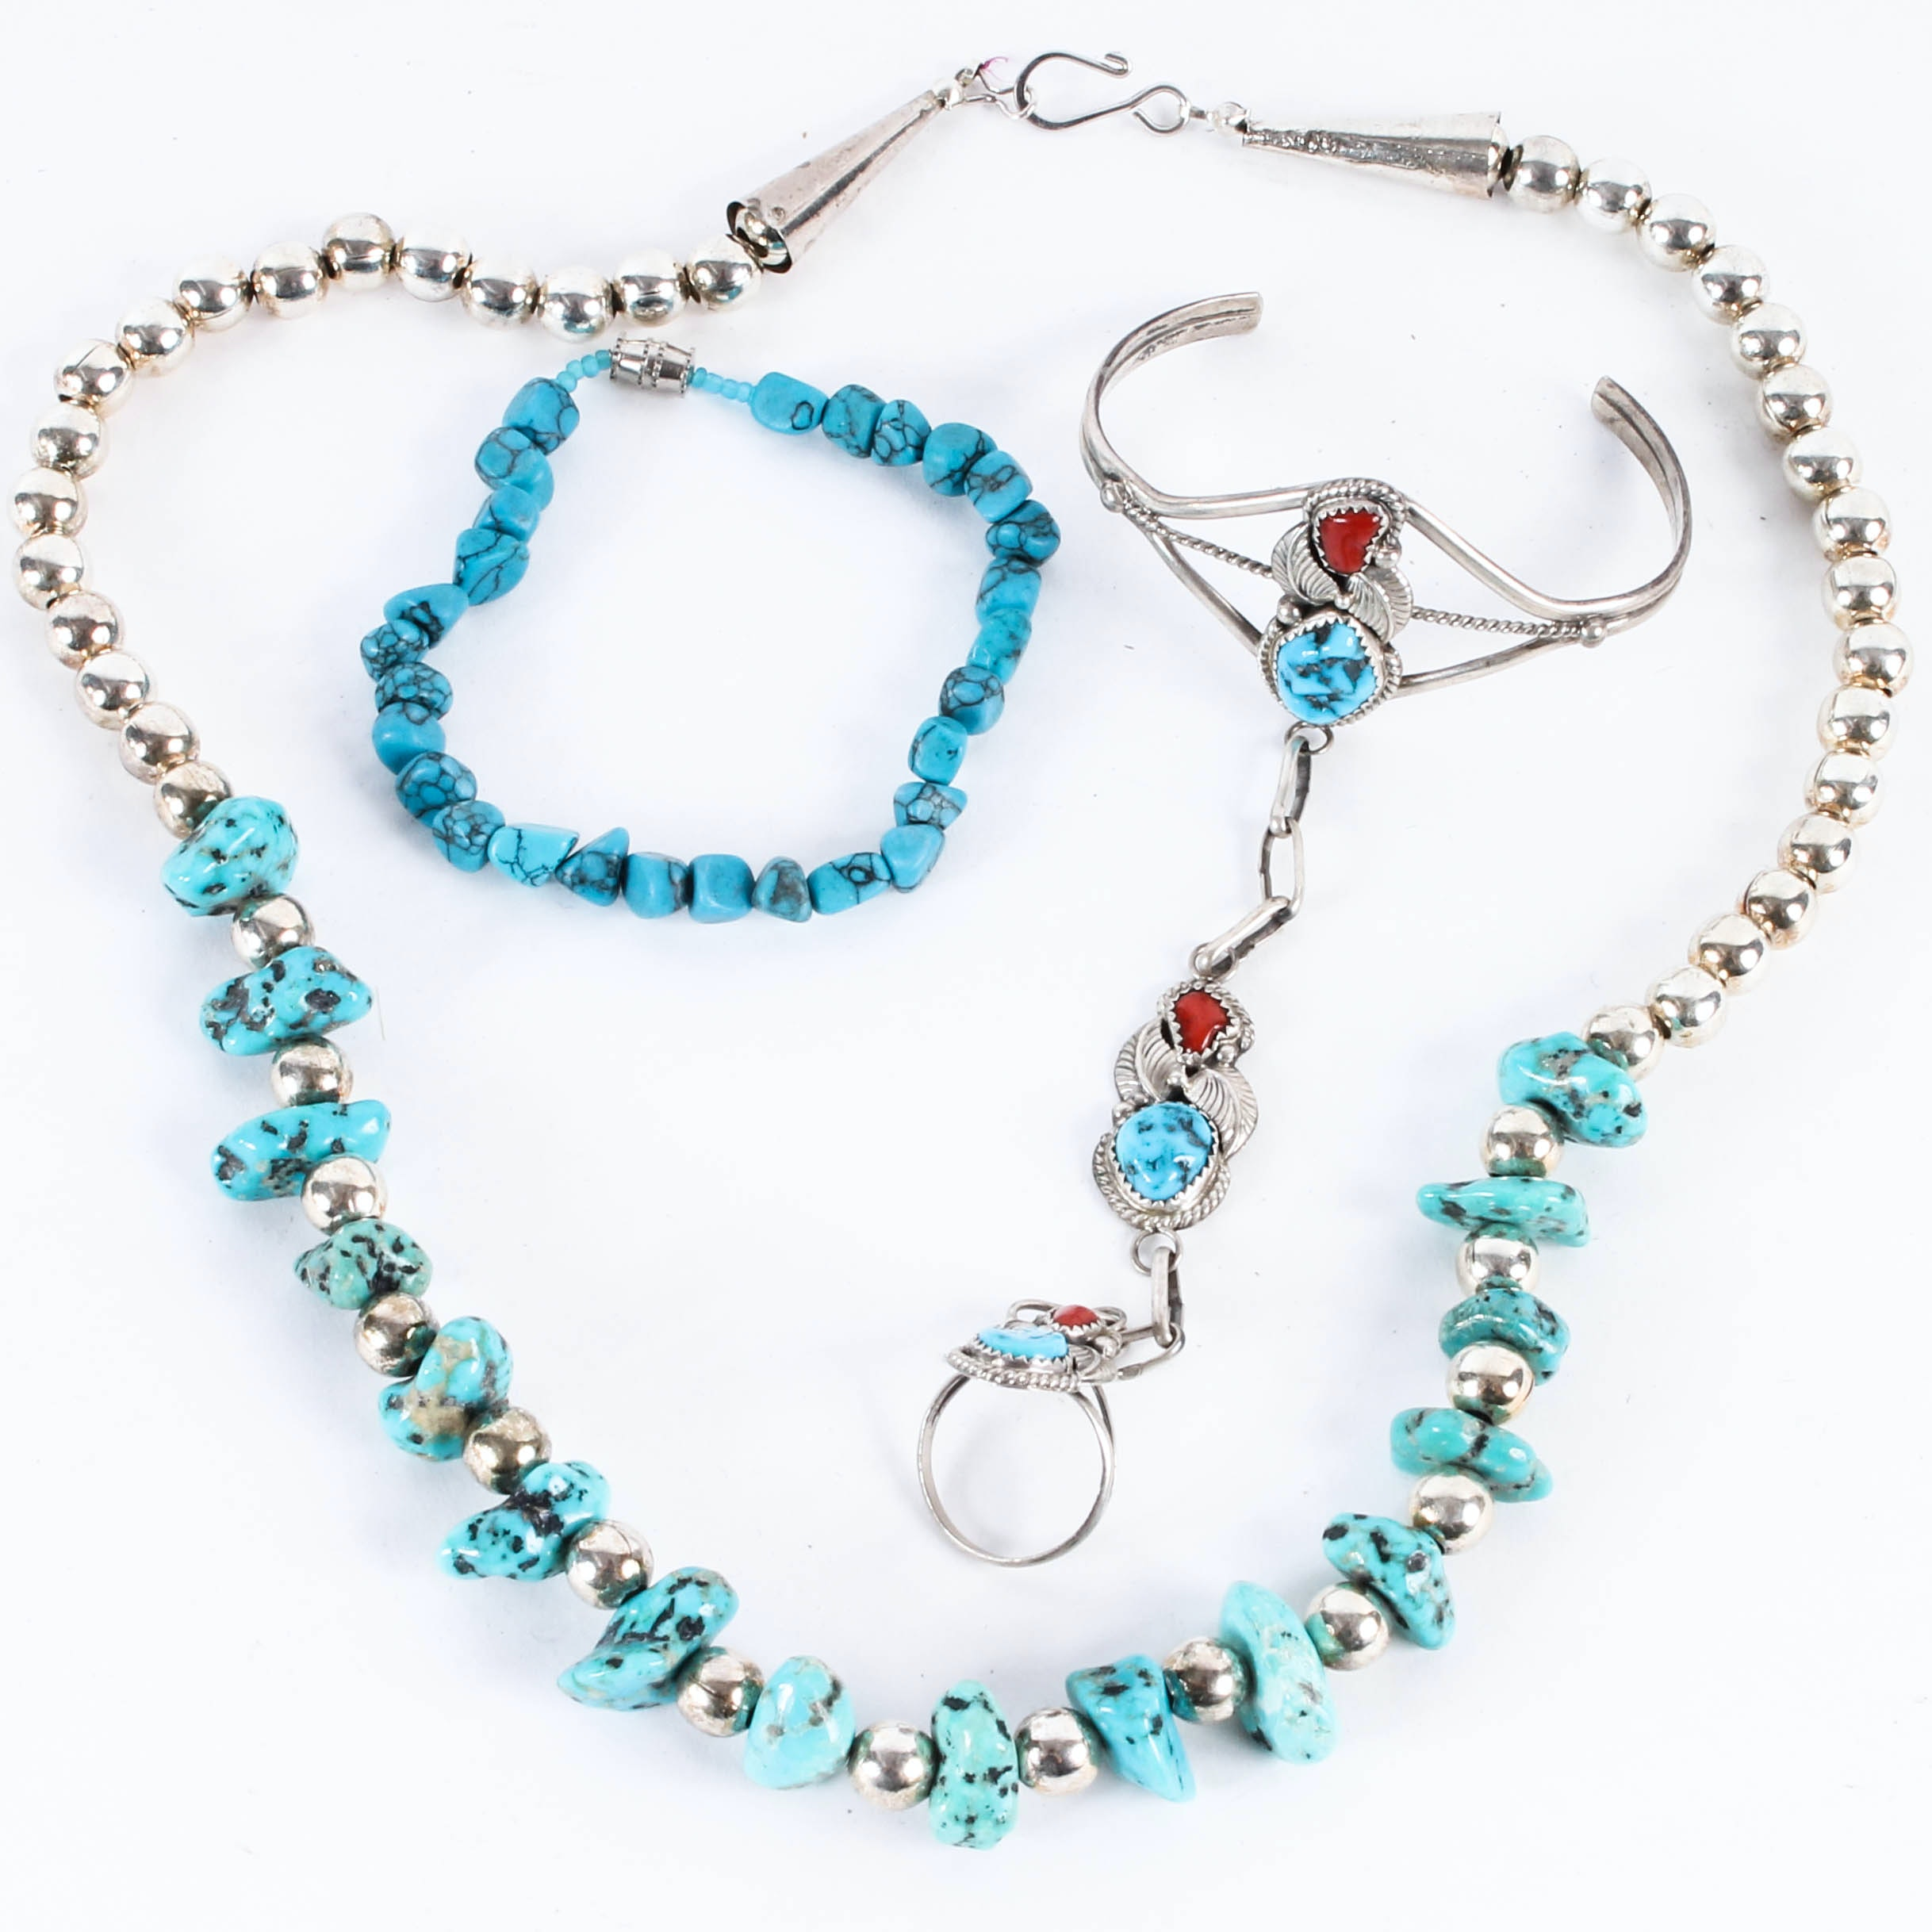 Assortment of Vintage Turquoise Jewelry